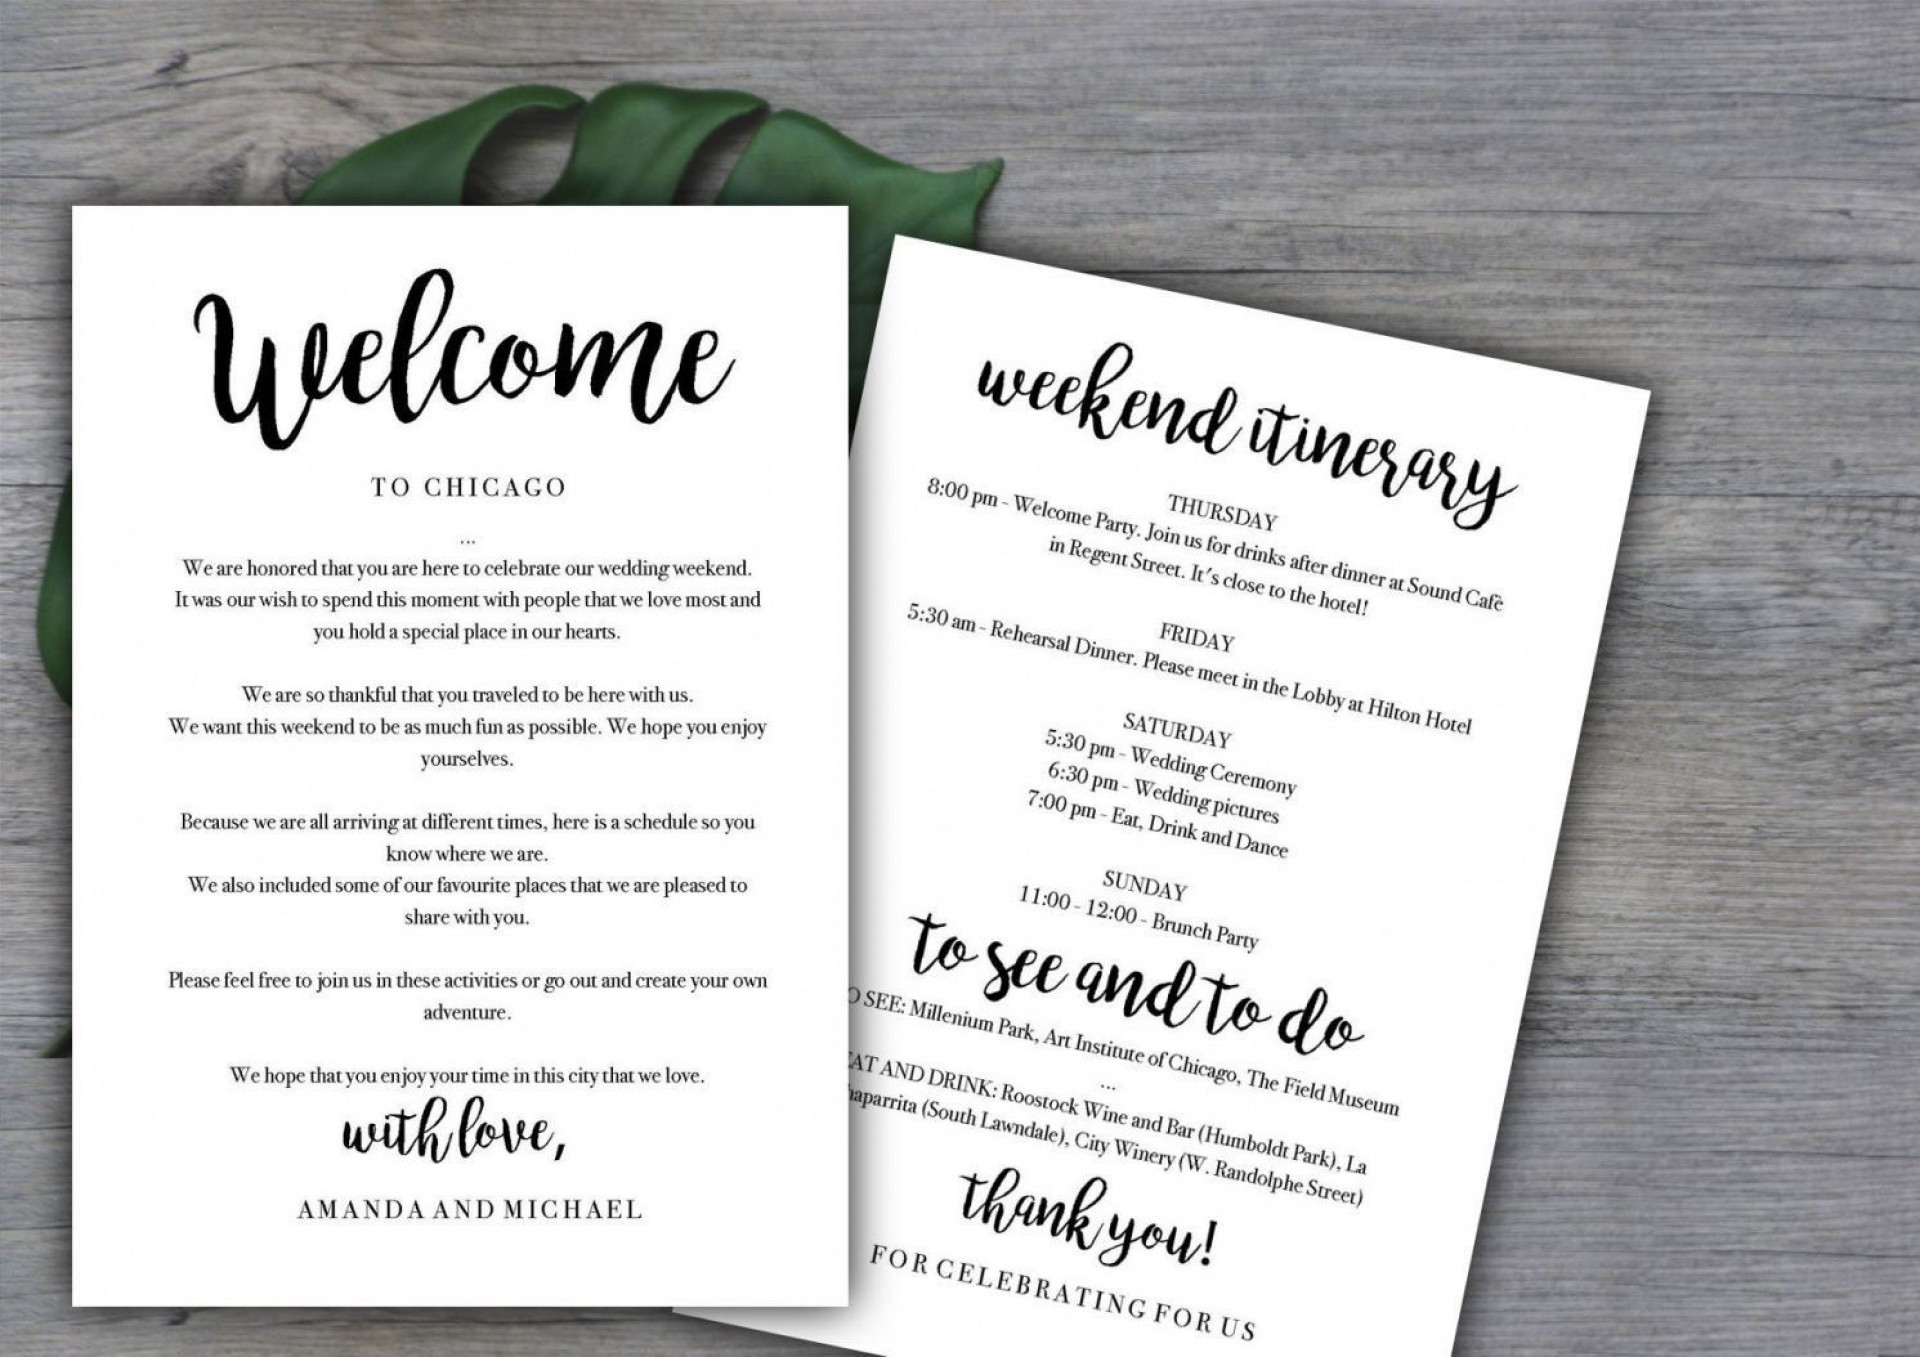 007 Fearsome Destination Wedding Itinerary Template High Def  Welcome Letter And Sample Free1920